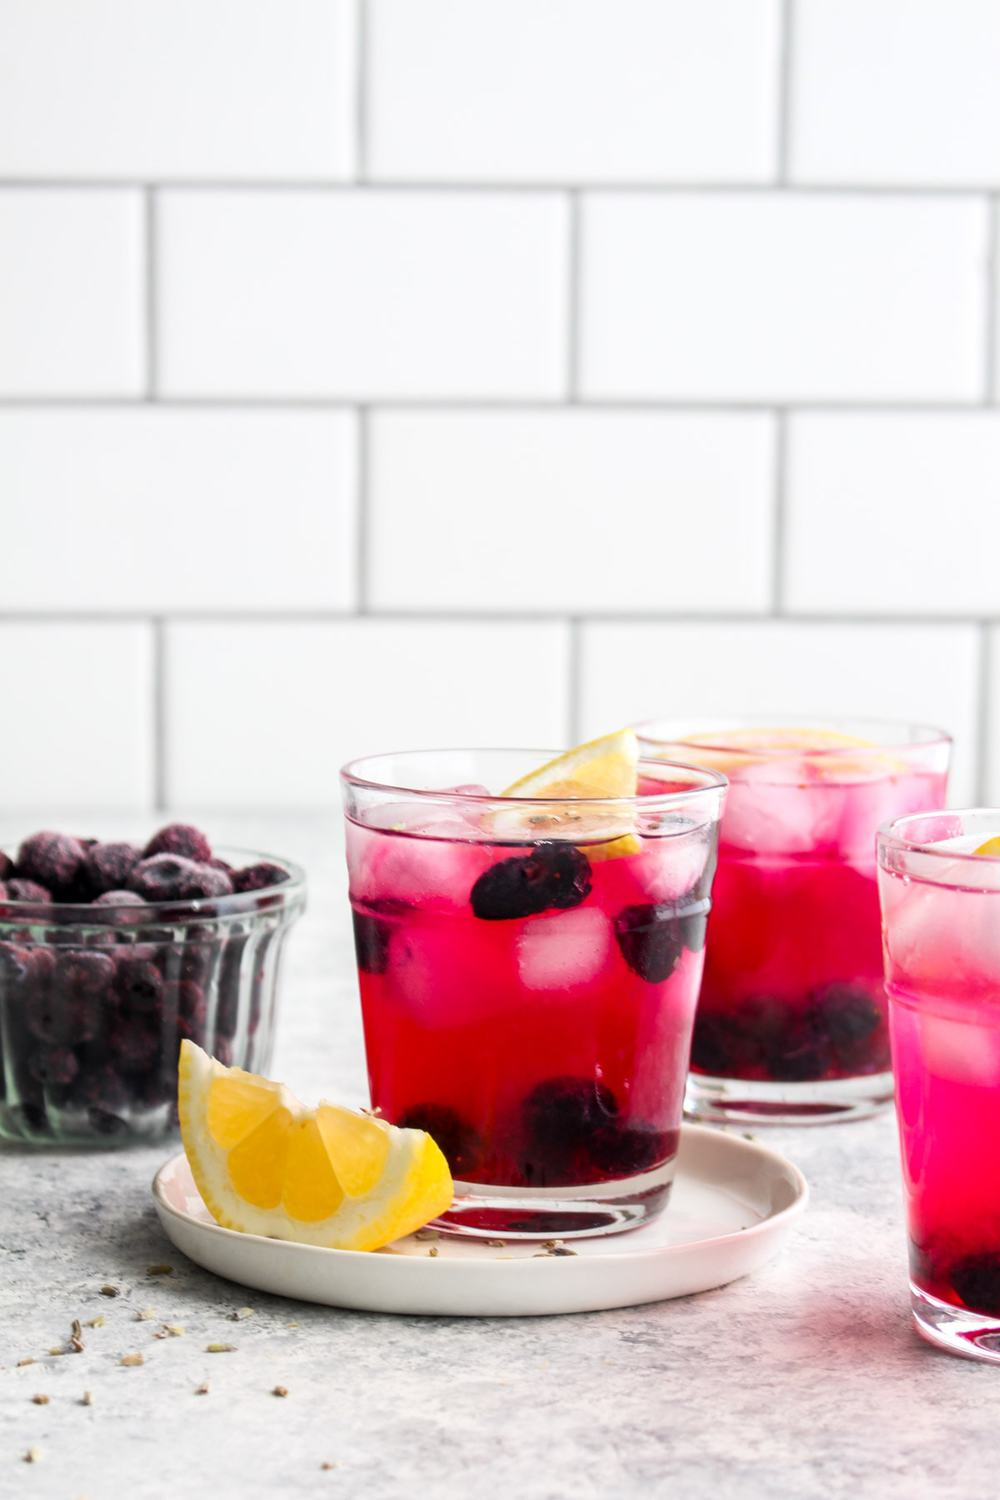 Three glasses of blueberry lavender lemonade on ice with blueberries and lemon.